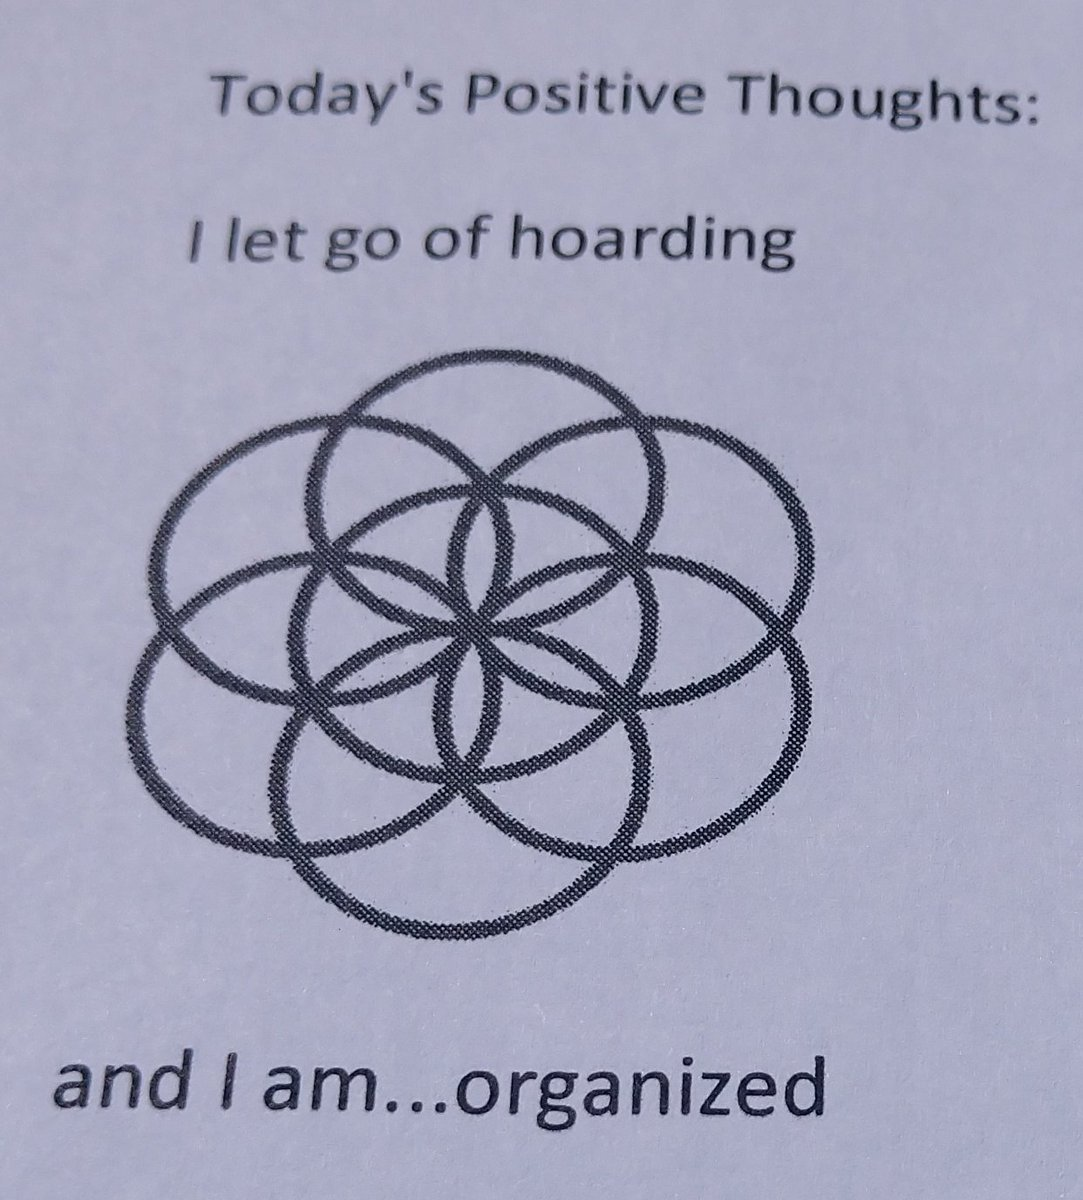 test Twitter Media - Today's Positive Thoughts: I let go of hoarding and I am...organized. See my #inspirational card sets. #affirmation https://t.co/bEDiUcU1fk